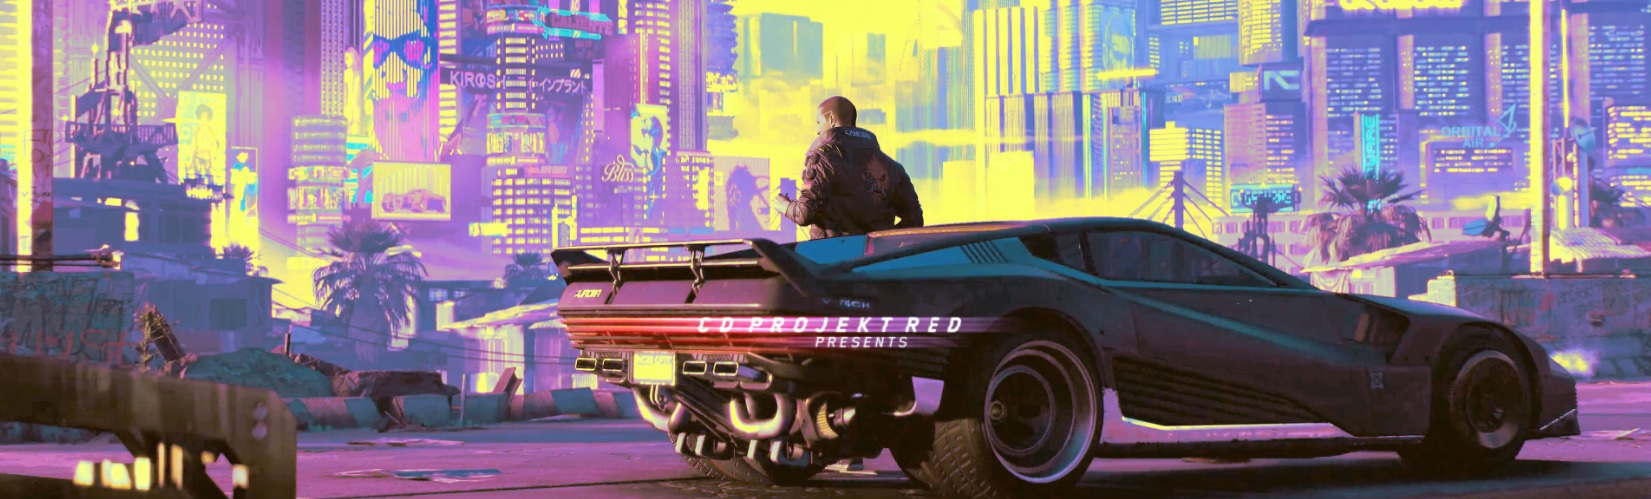 video cyberpunk 2077 en direct sur twitch |  RPG Jeuxvidéo